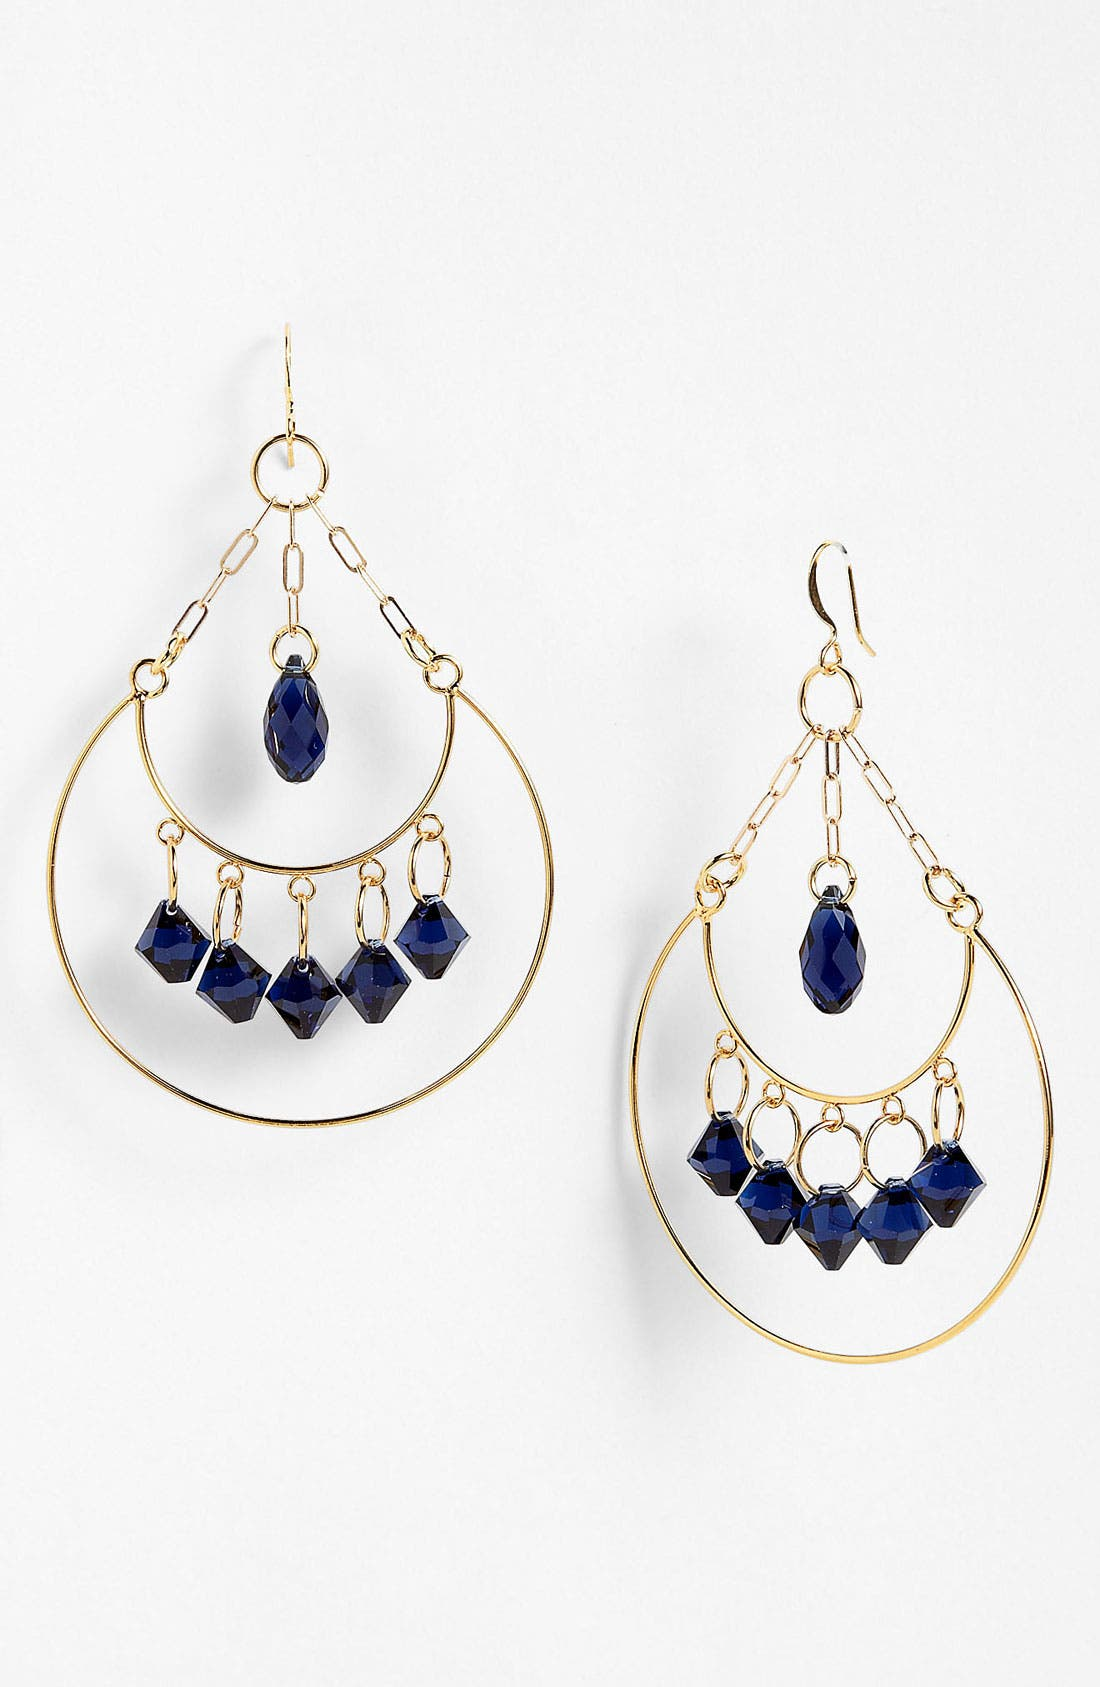 Main Image - Verdier Jewelry Indigo Crystal Chandelier Earrings